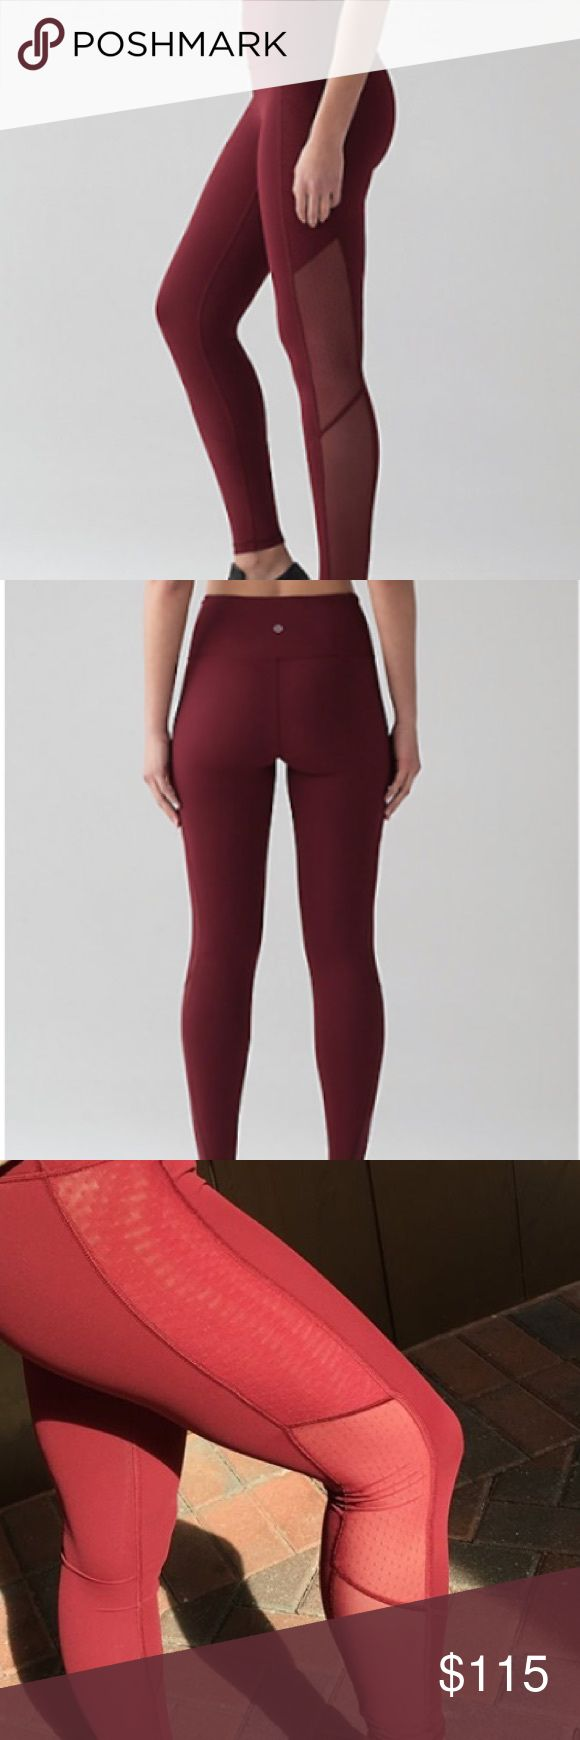 Lululemon Bodycon Tight Only worn three times. Mesh detail goes all the way up to waist! Deep rouge color like stock photos, not like third picture in sunlight. Excellent condition, size 4. lululemon athletica Pants Leggings